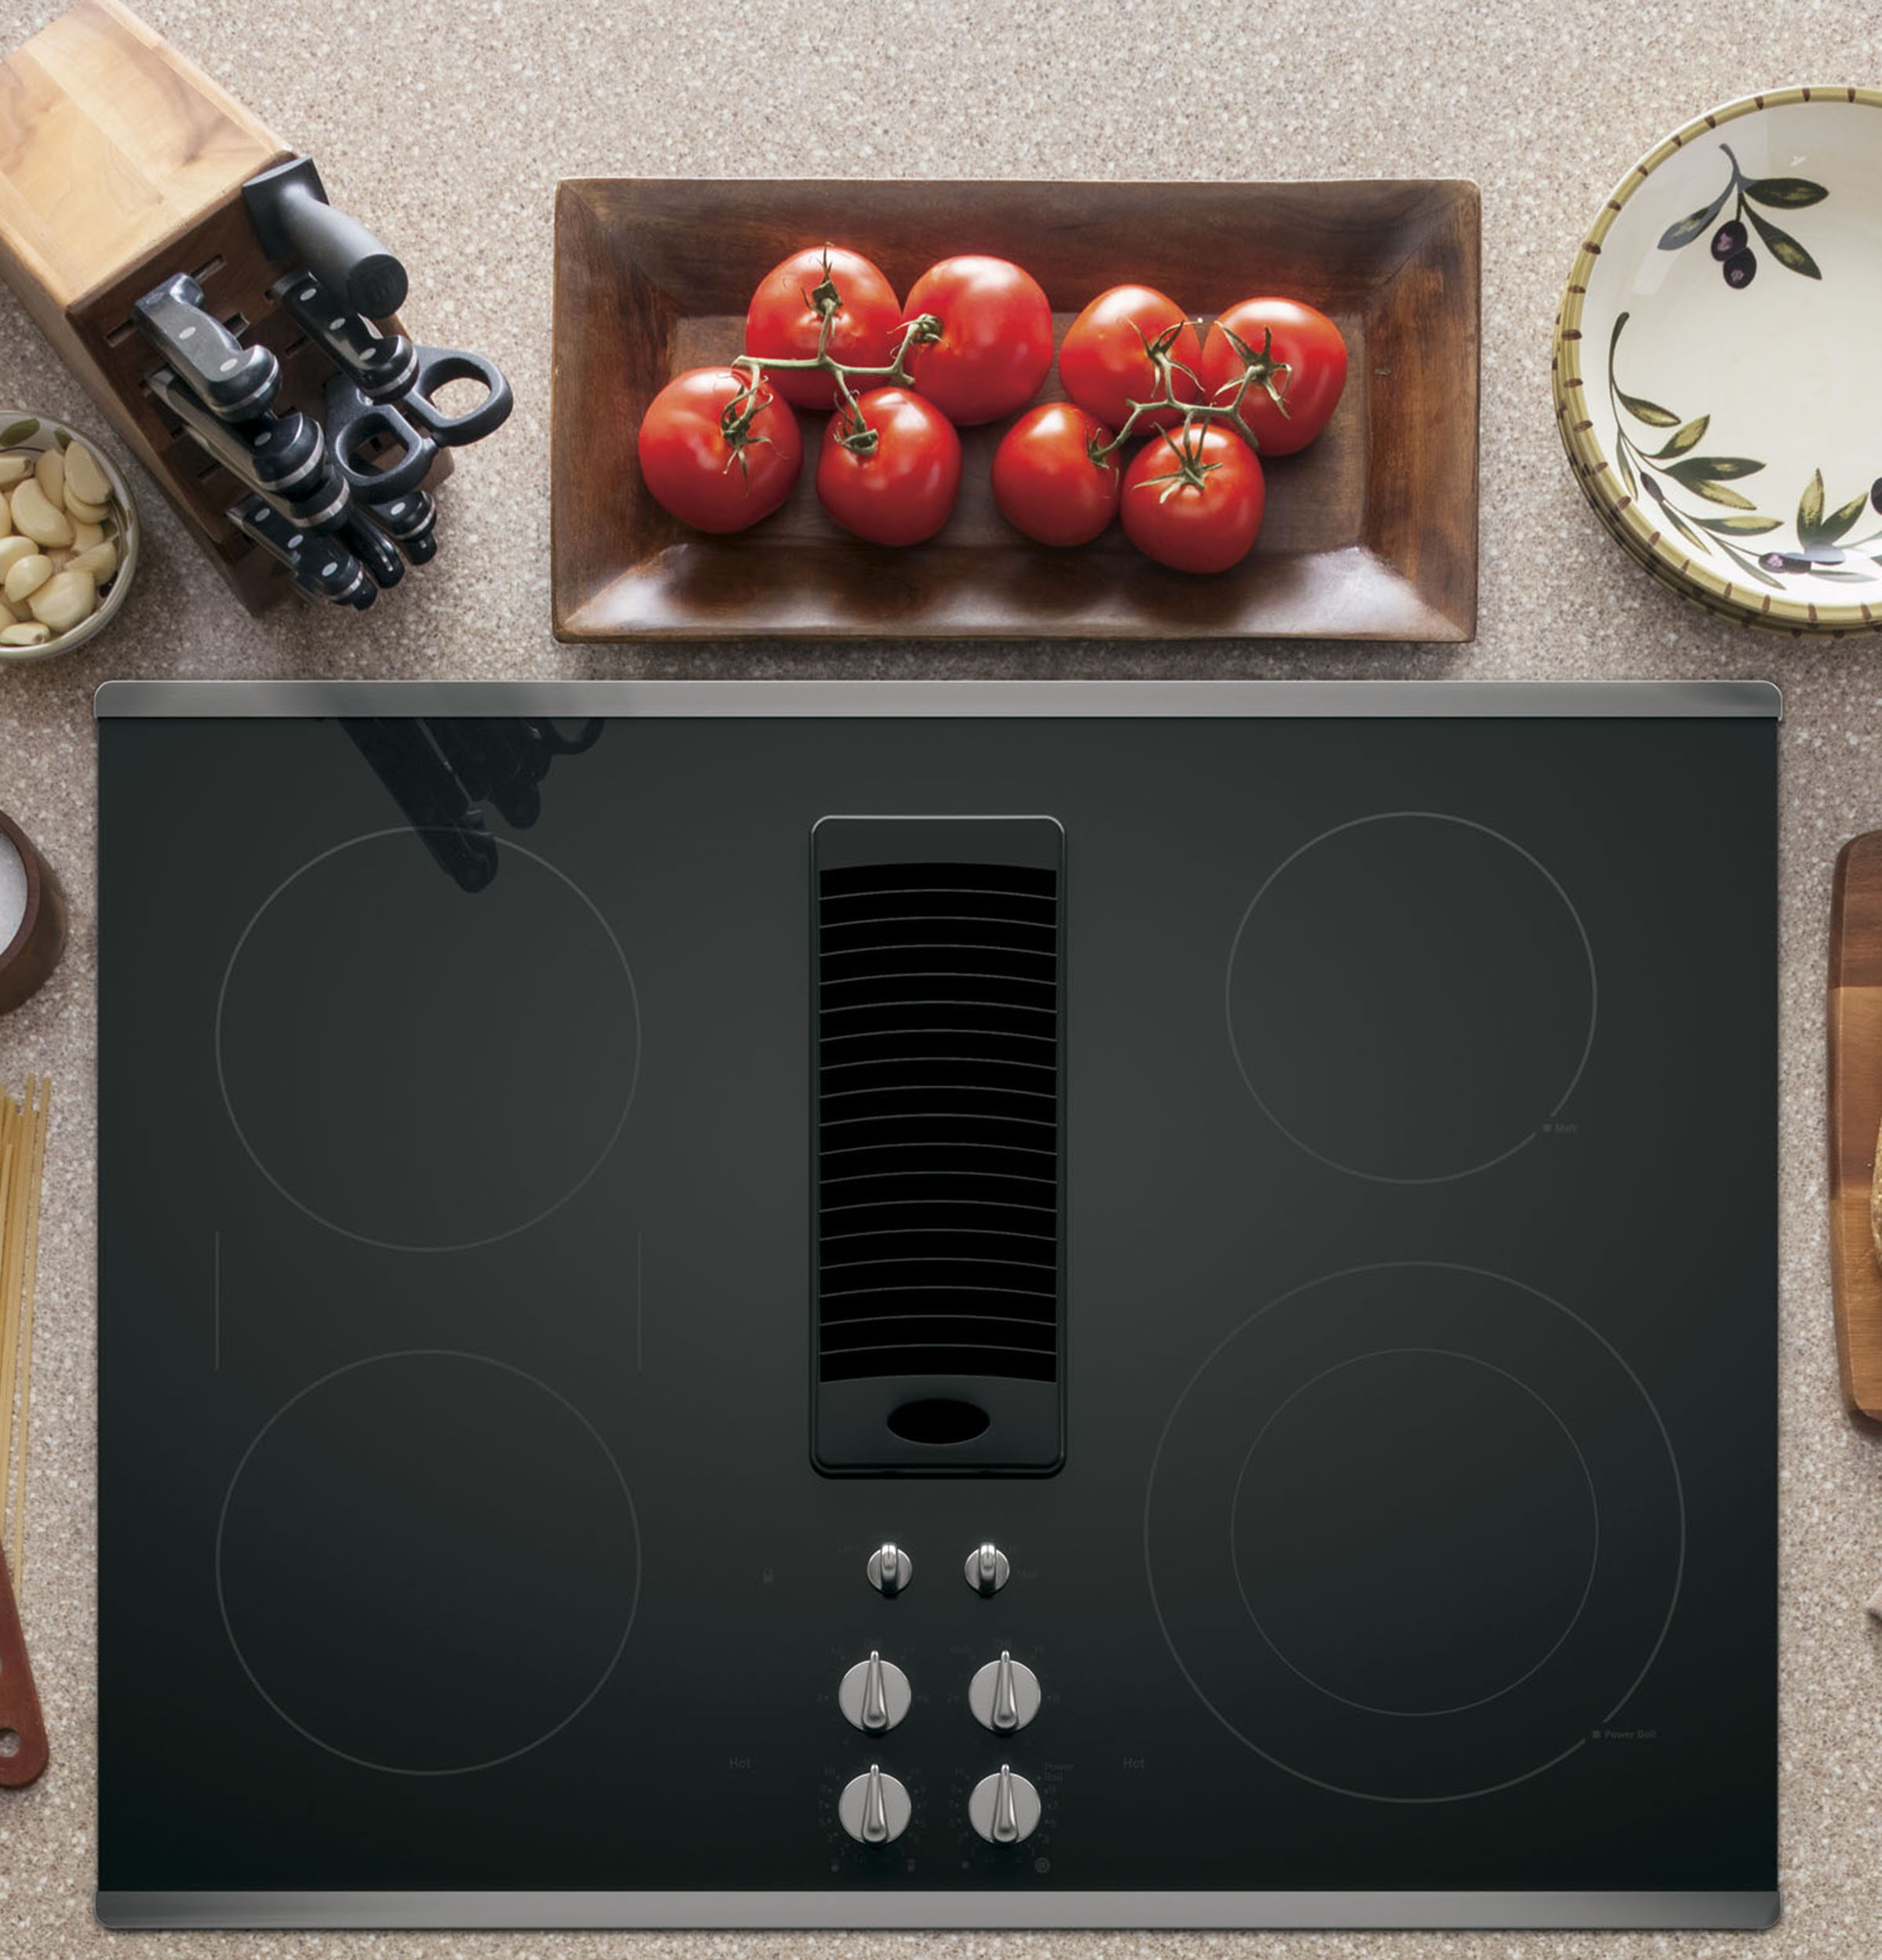 "Model: PP9830SJSS | GE Profile GE Profile™ Series 30"" Downdraft Electric Cooktop"